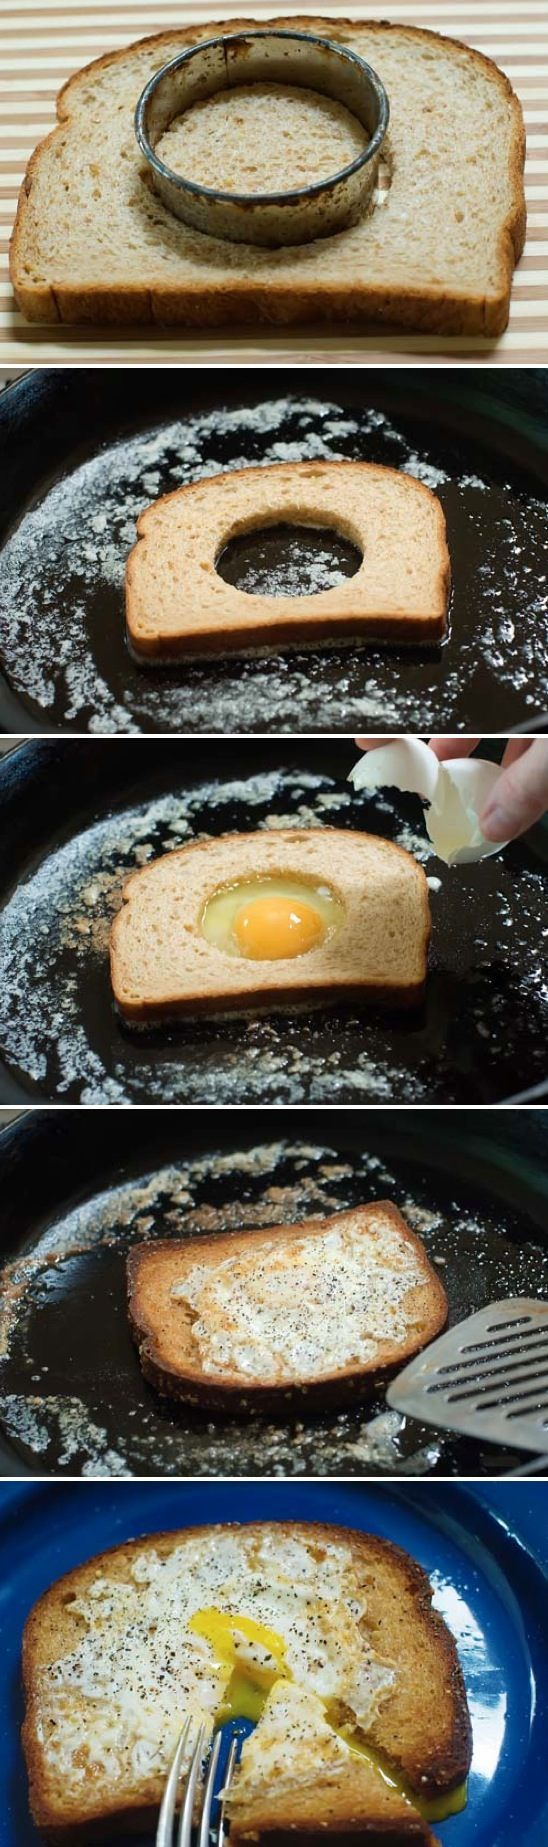 My mom used to make this for me when I was a kid. Egg In A Hole Super Secret Recipe - breakfast, egg, food, food recipes, recipes